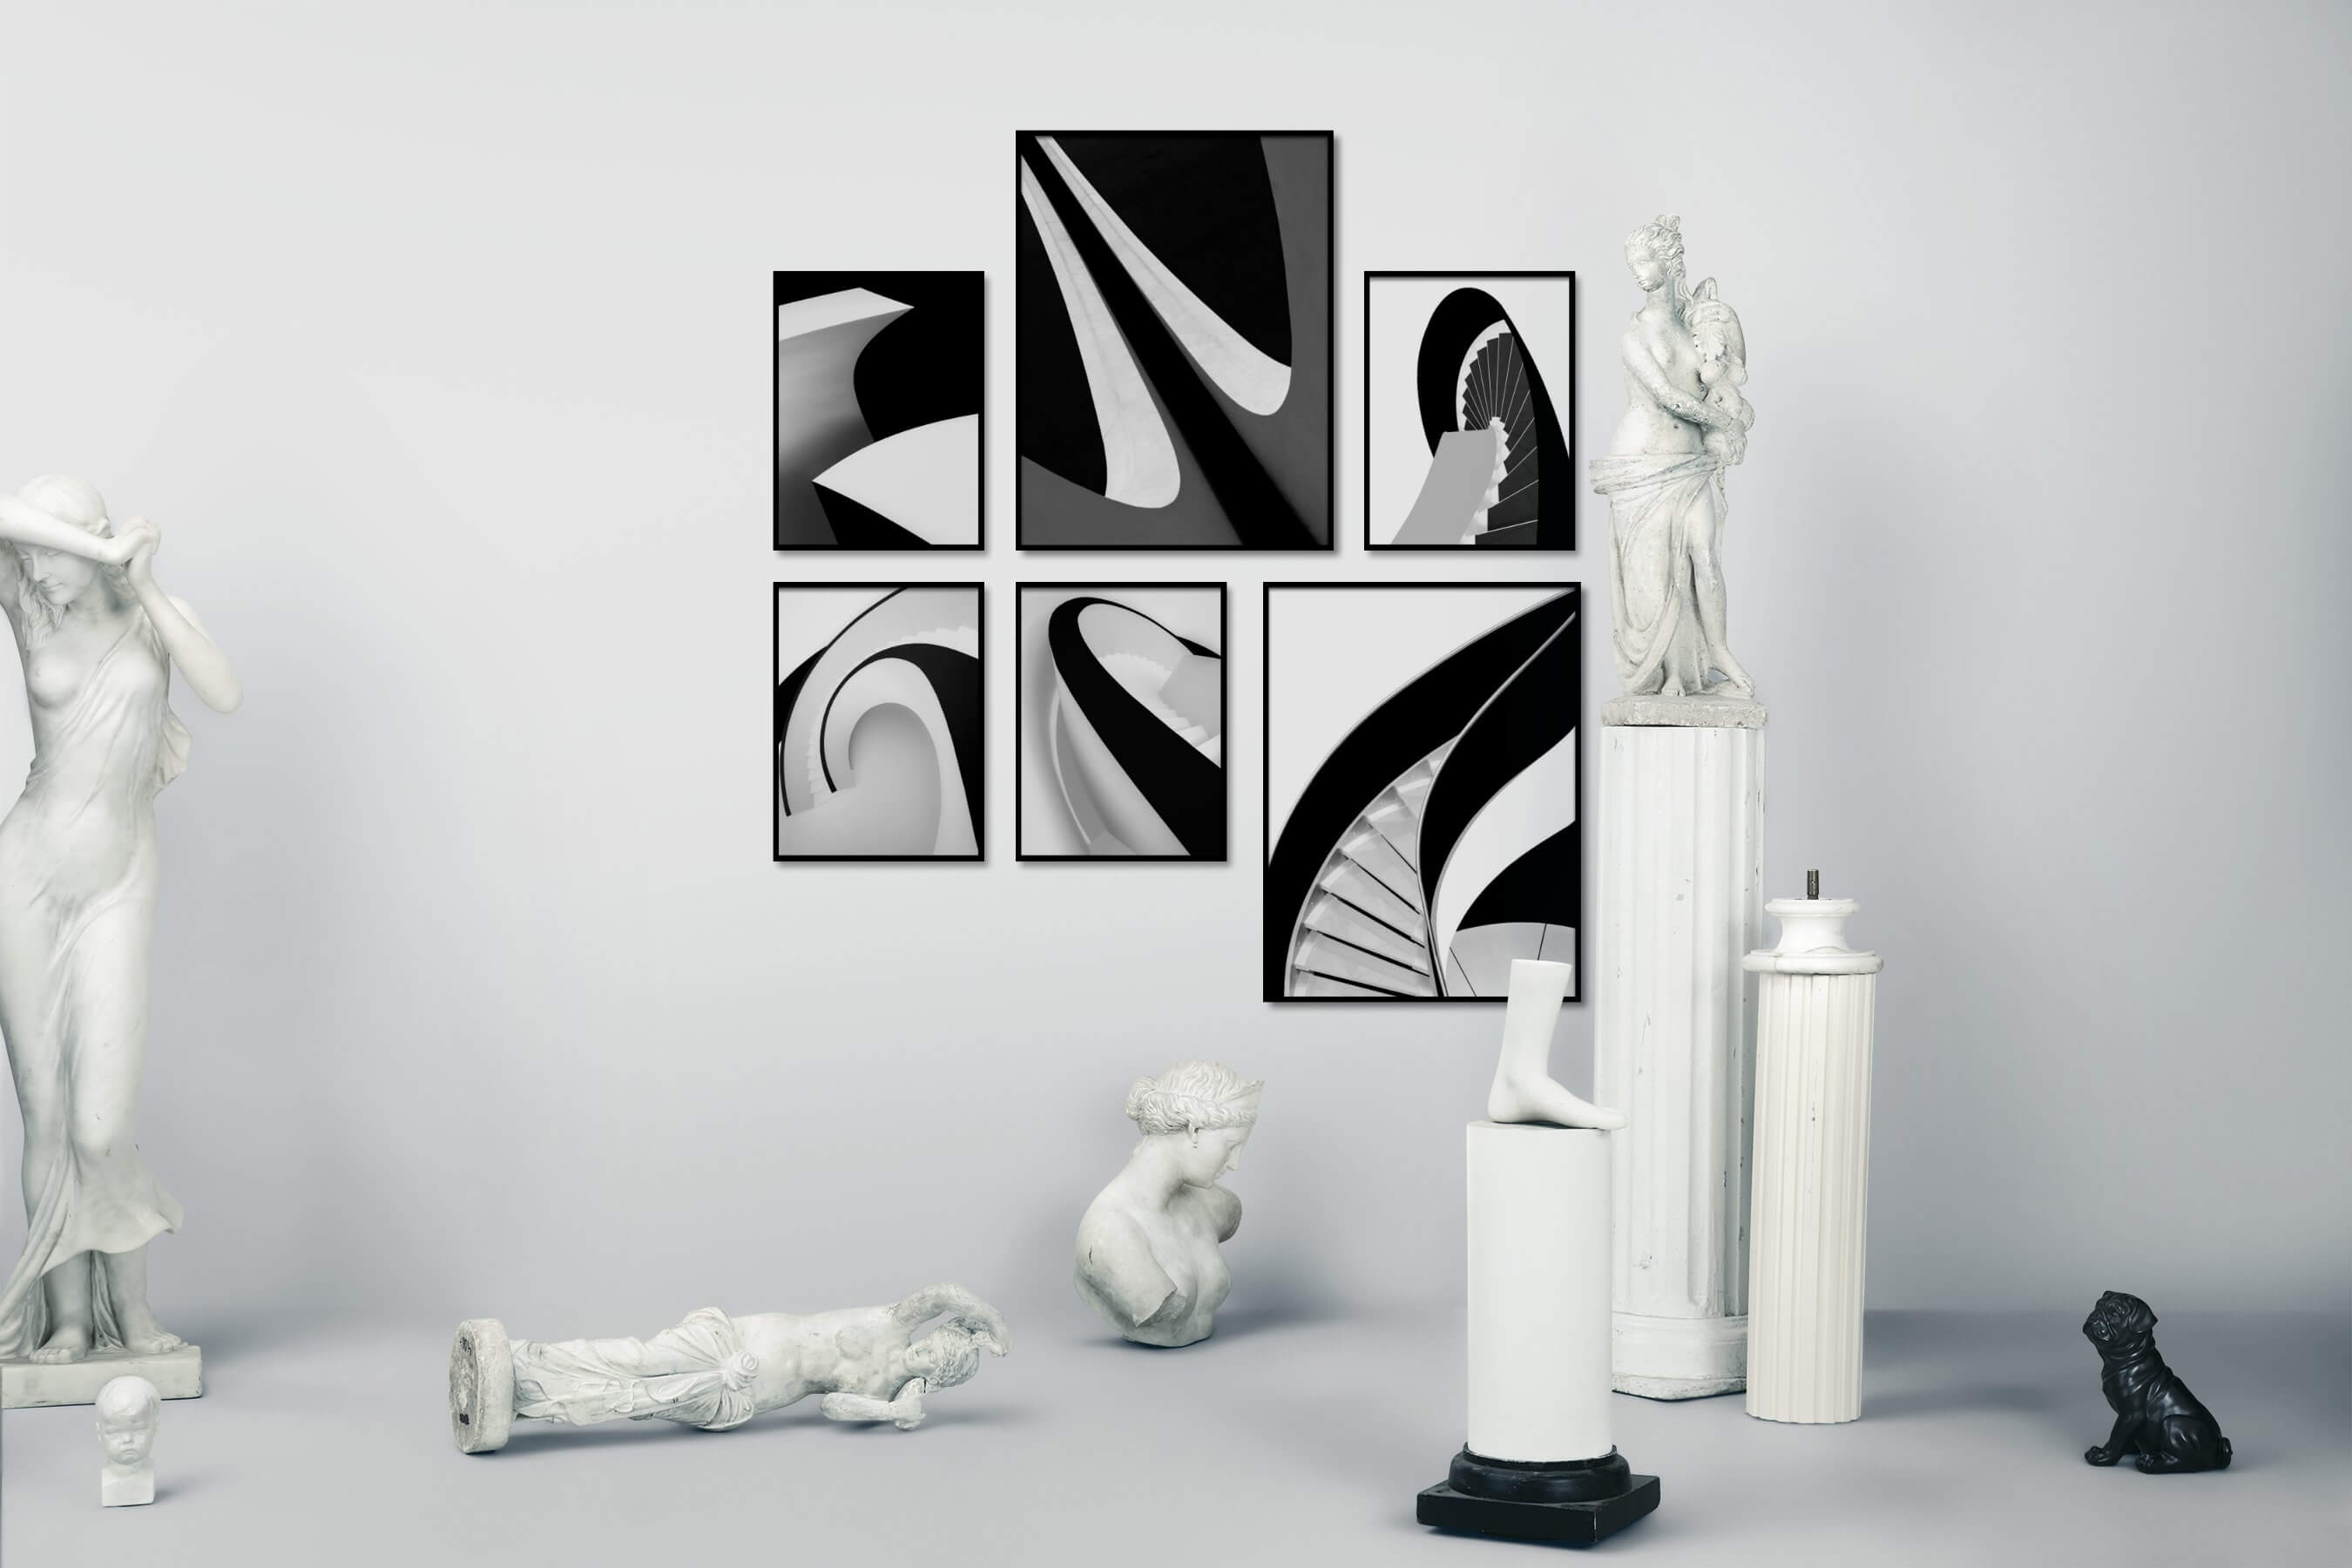 Gallery wall idea with six framed pictures arranged on a wall depicting Black & White, For the Minimalist, and For the Moderate